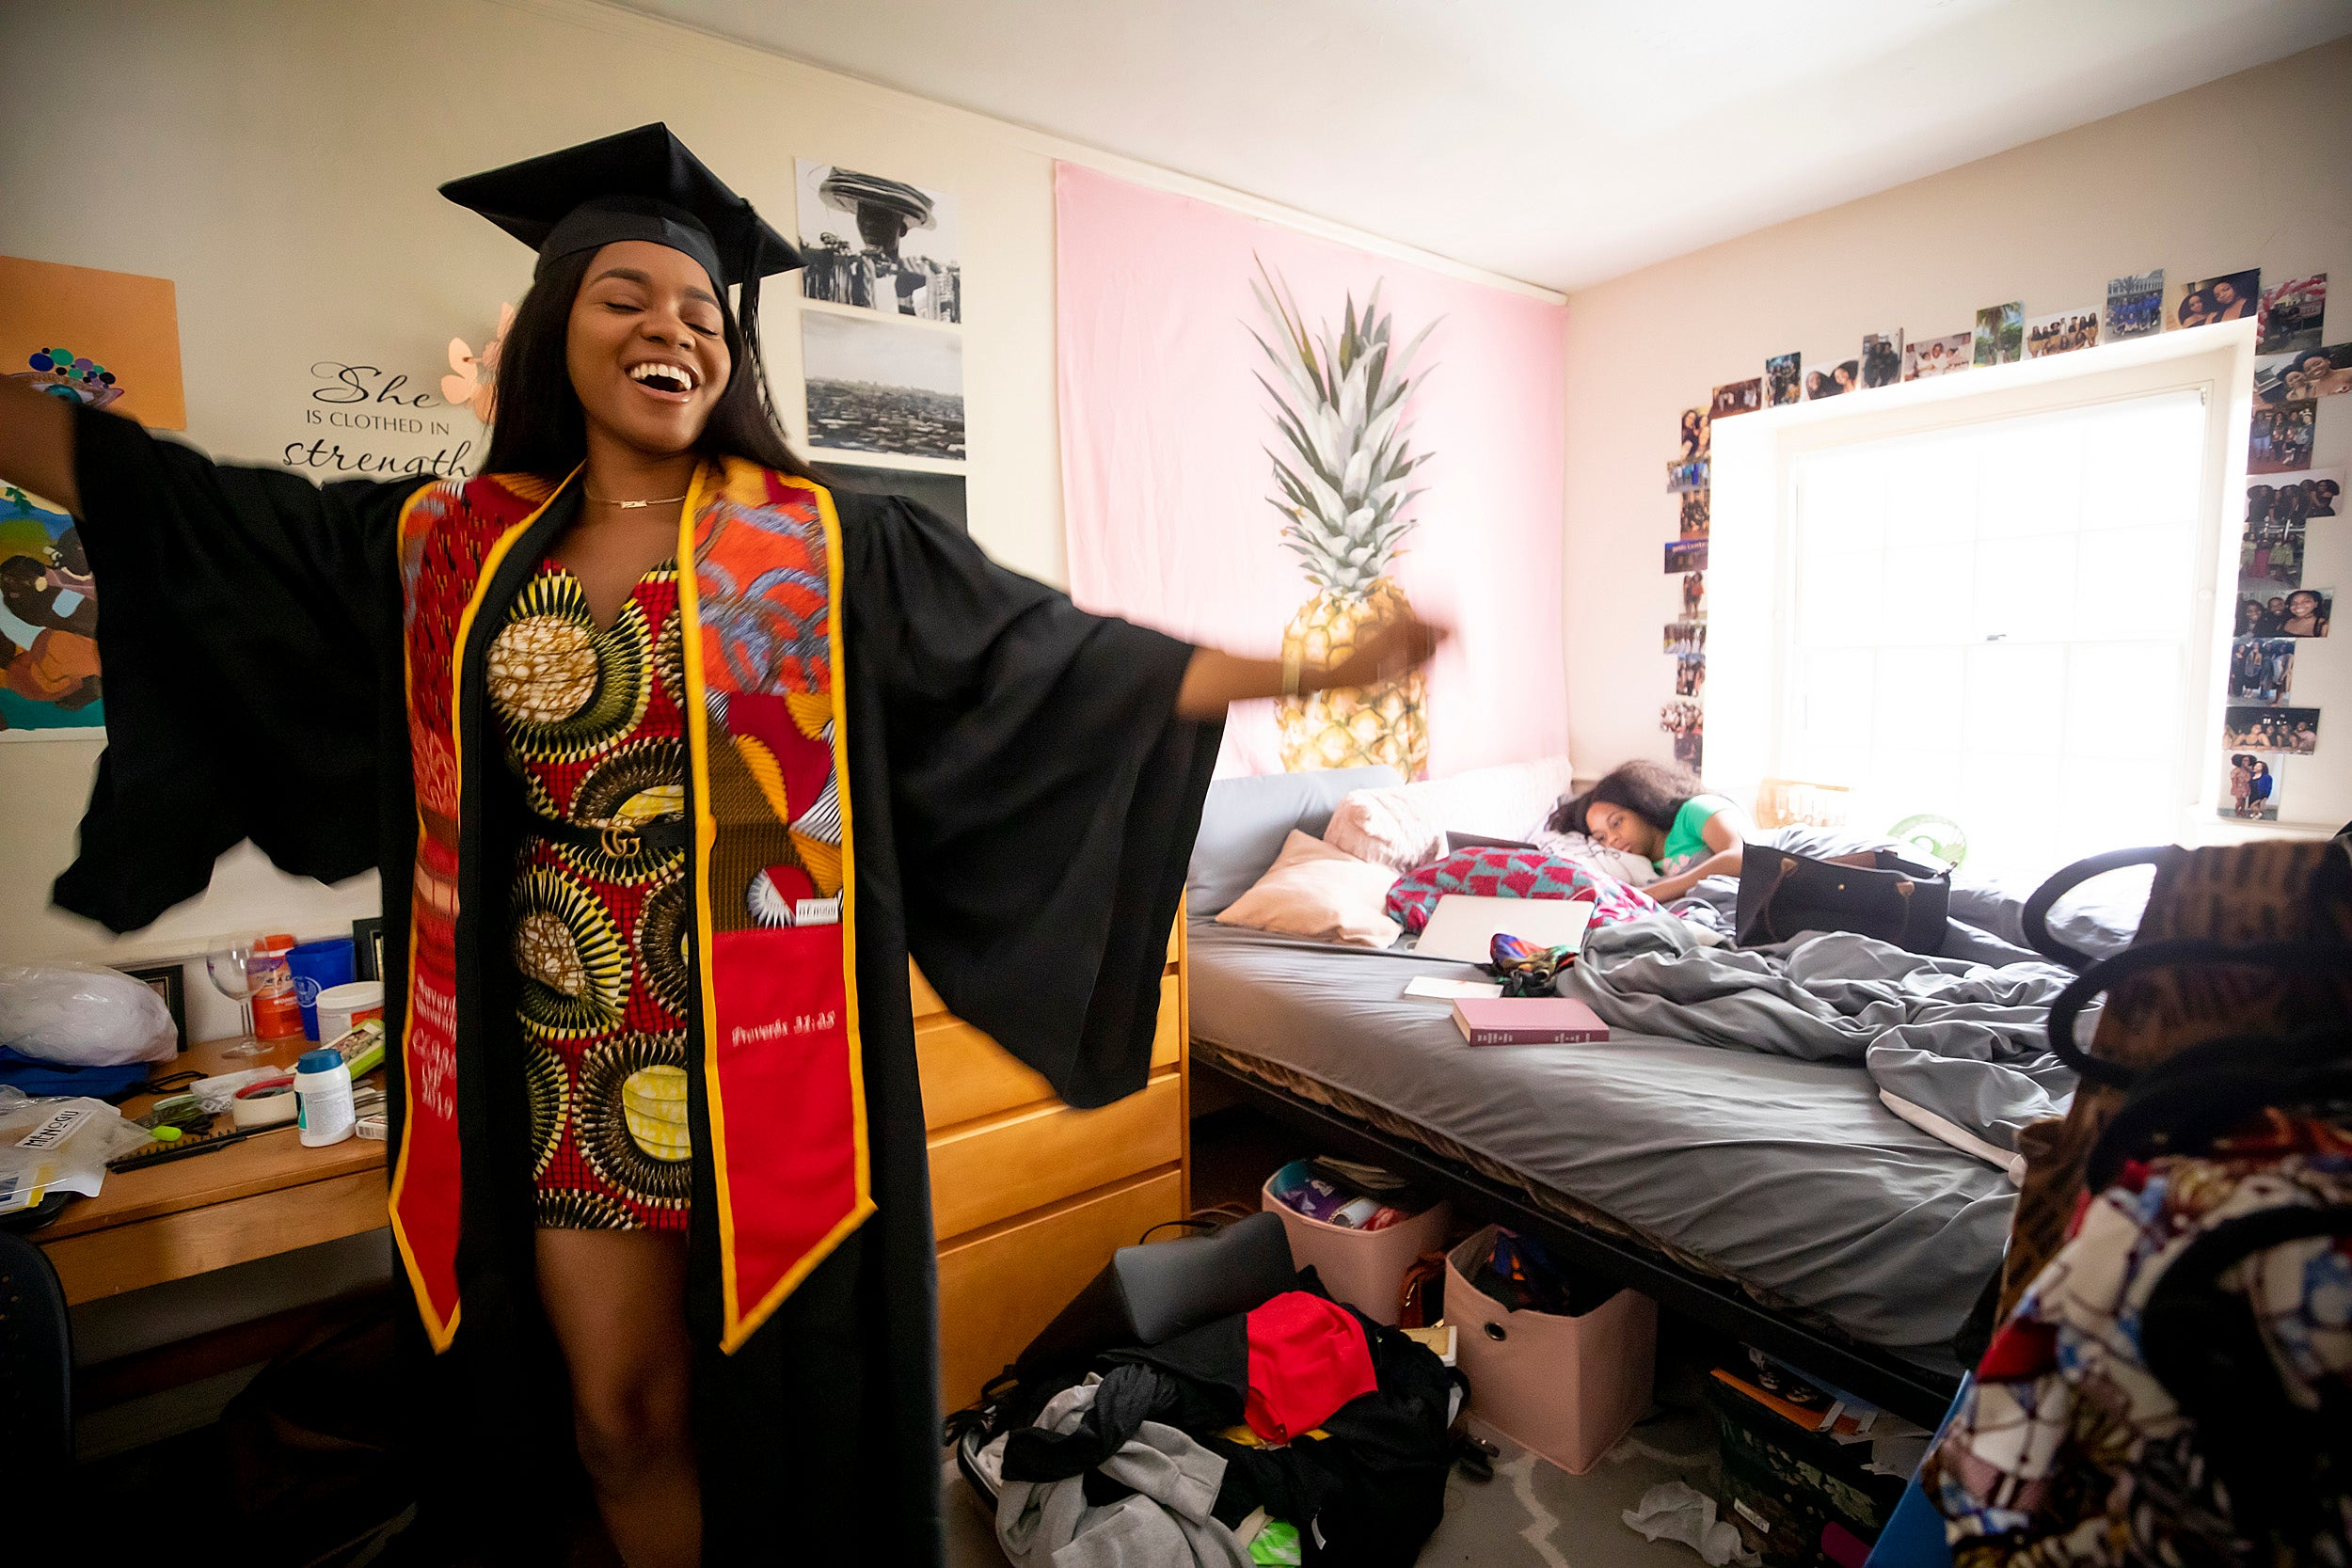 Angelica Chima dances in excitement in her Eliot House room before the ceremony while her visiting sister sleeps behind her.